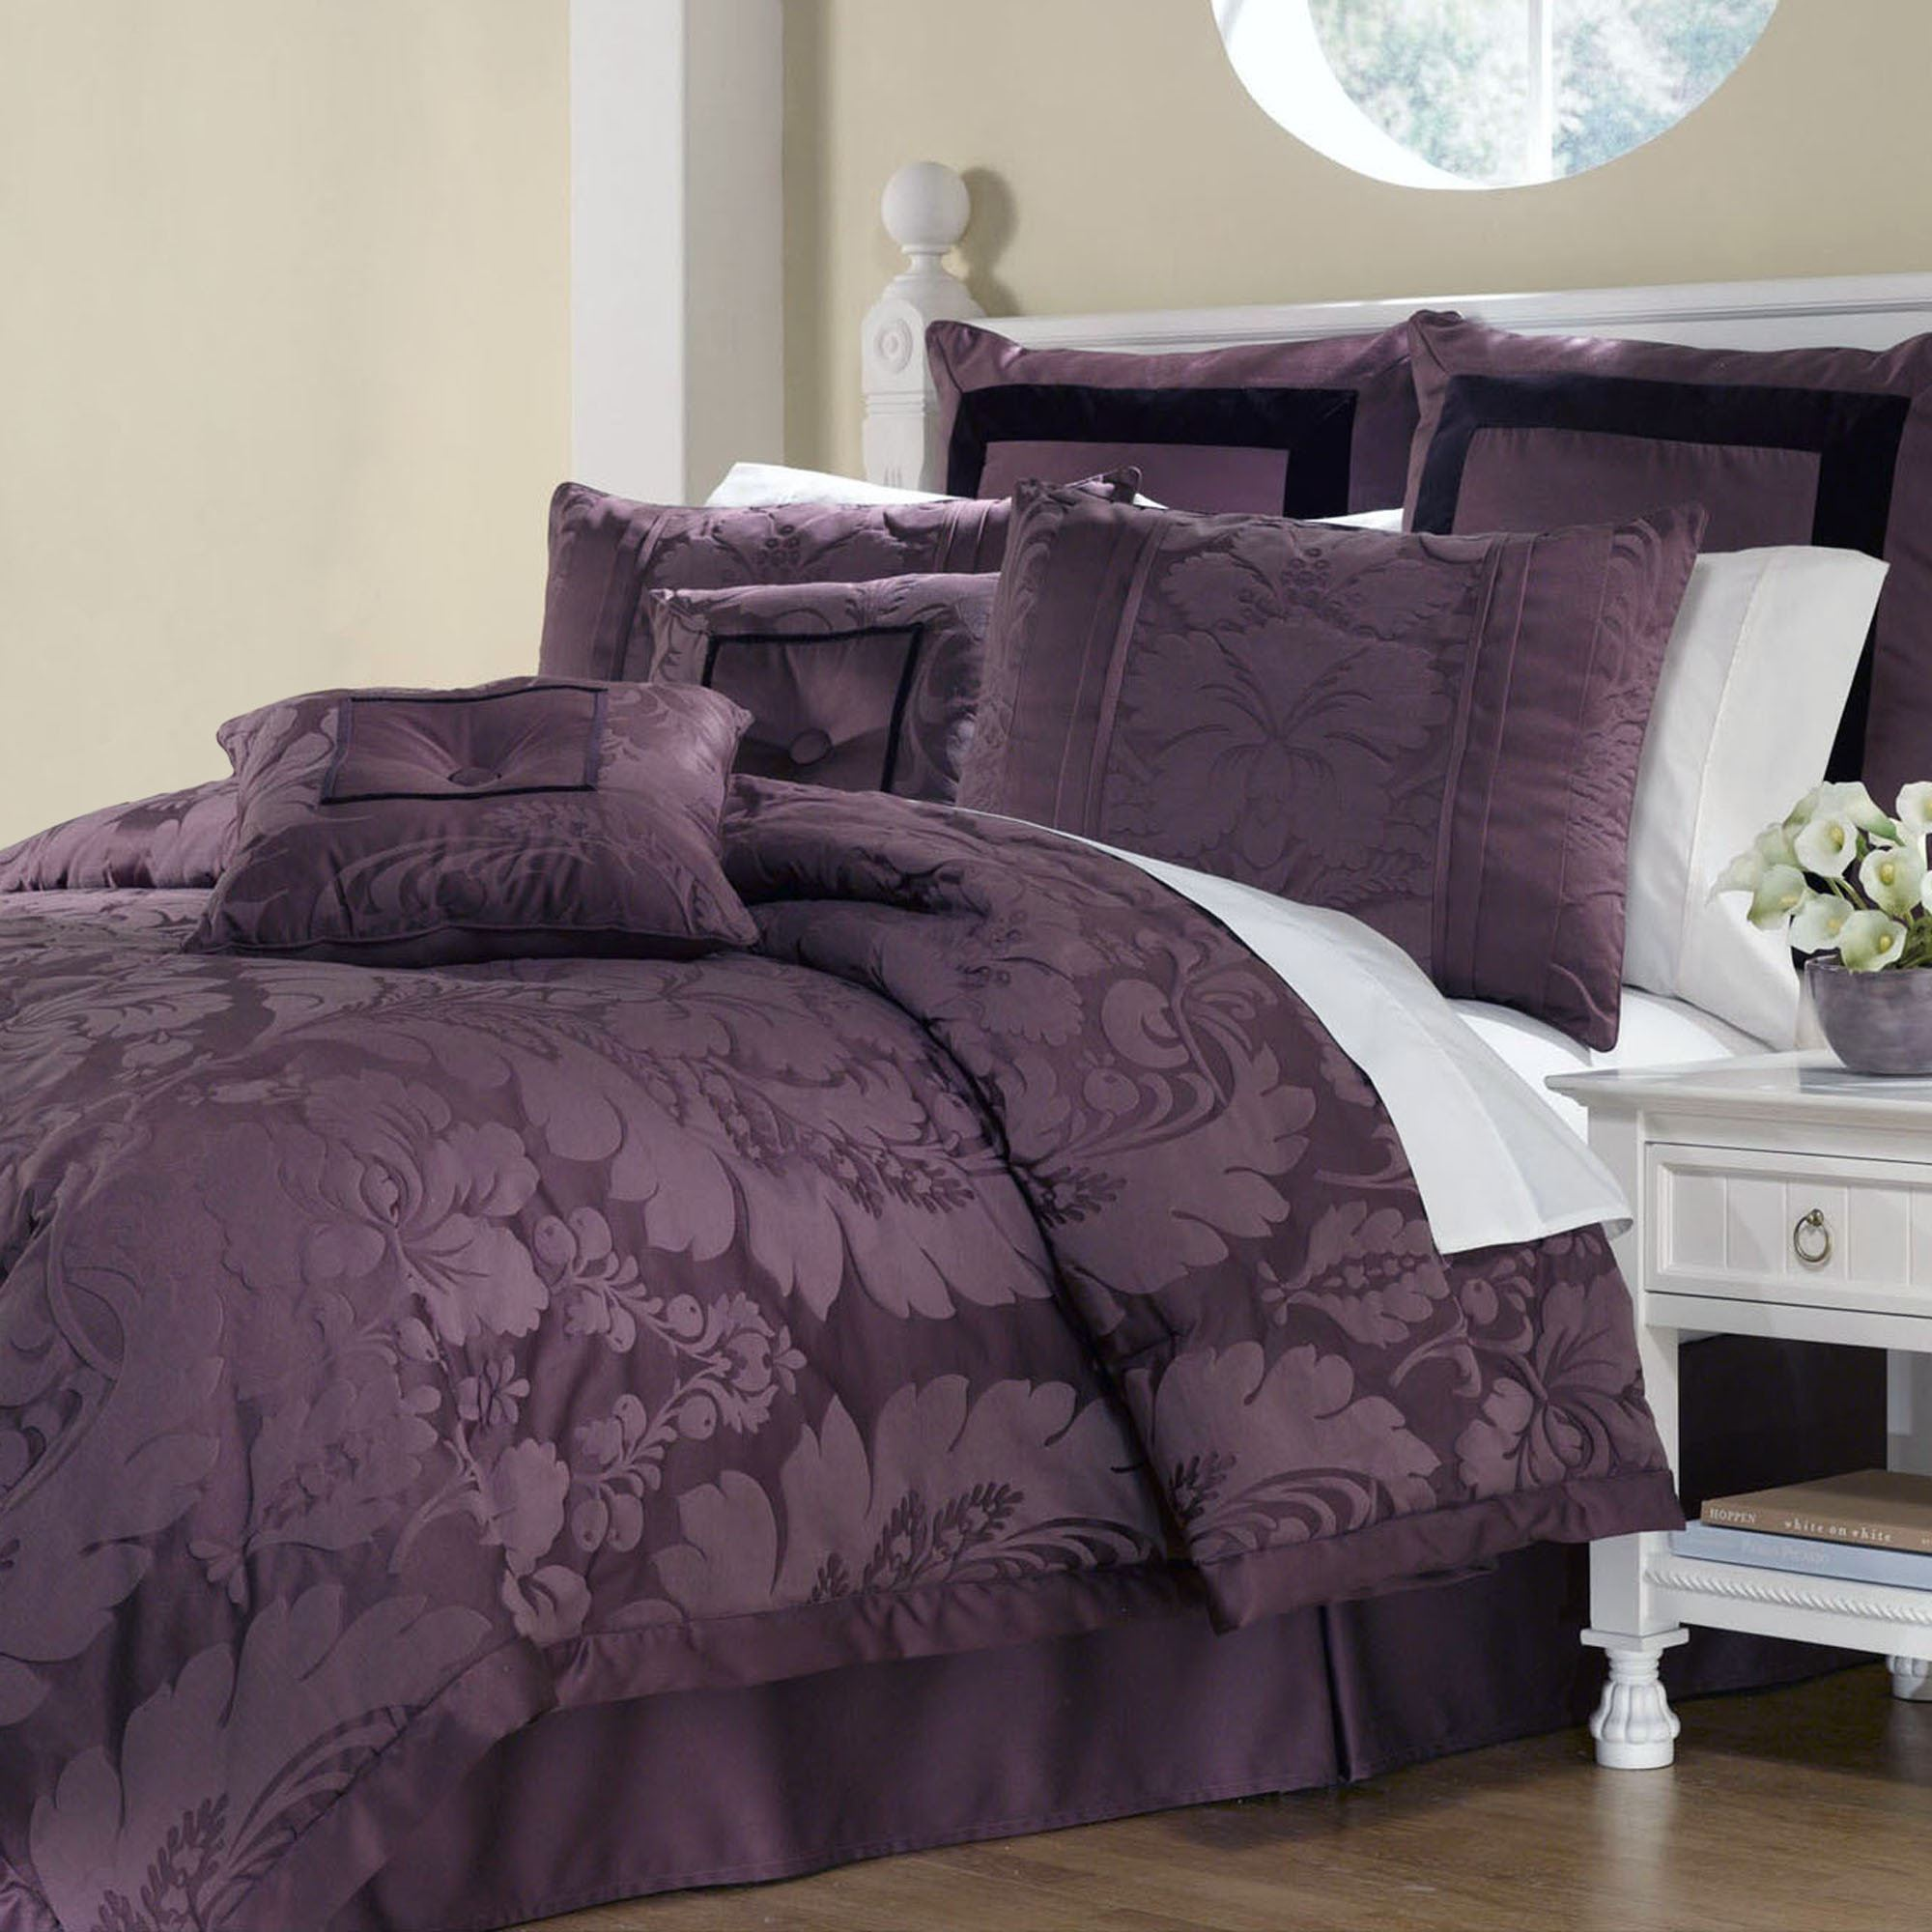 purple bedroom sets. Lorenzo Comforter Bed Set Plum  Click to expand Damask 8 pc